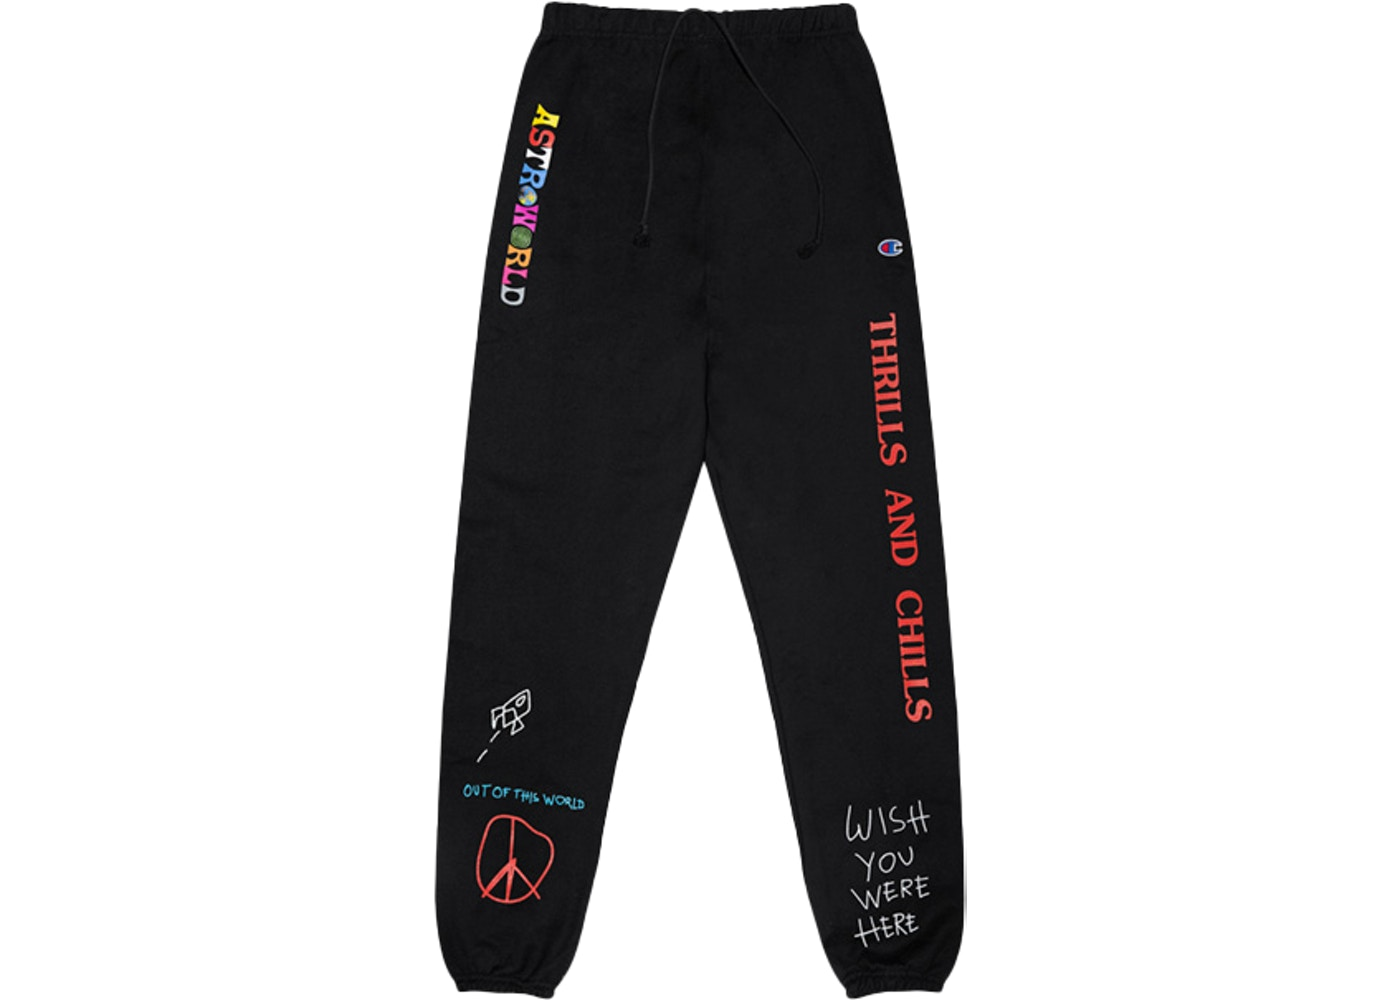 cd834f4f Travis Scott Astroworld Thrills And Chills Sweatpants Black